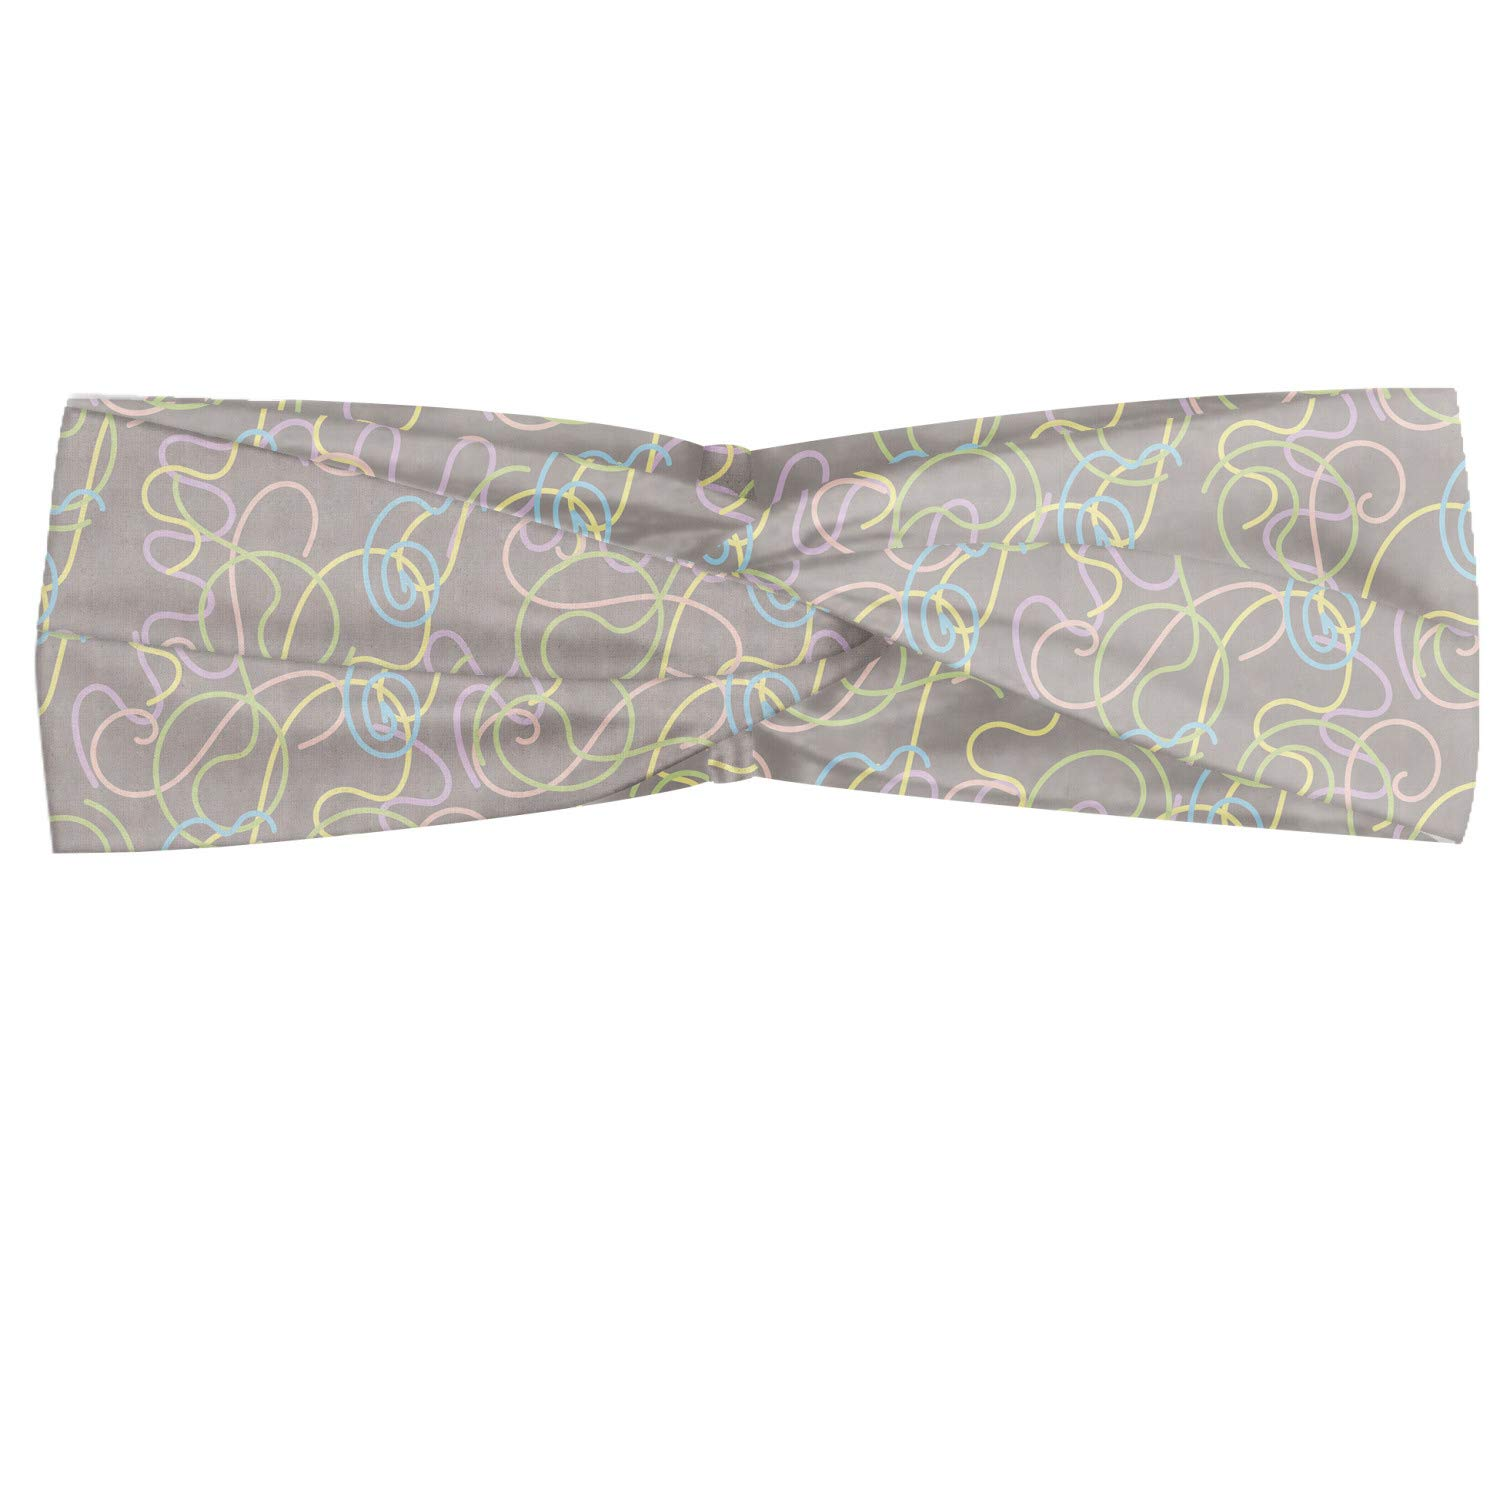 Ambesonne Abstract Geometry Headband, Pastel Colored Strings Motifs Randomly Spread Illustration, Elastic and Soft Women's Bandana for Sports and Everyday Use, Pale Taupe Multicolor